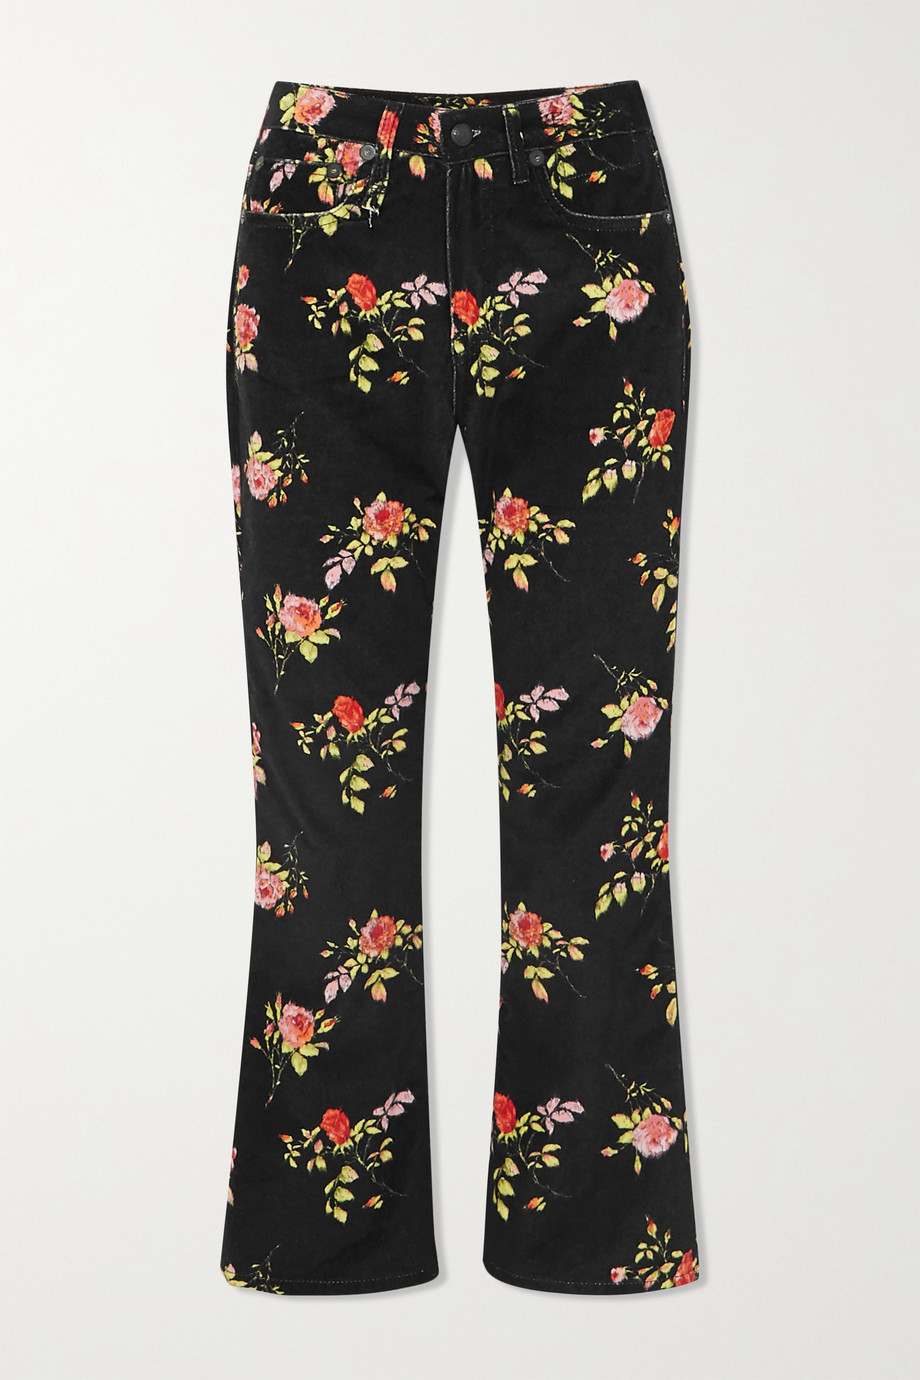 R13 Kick Fit cropped floral-print high-rise flared jeans